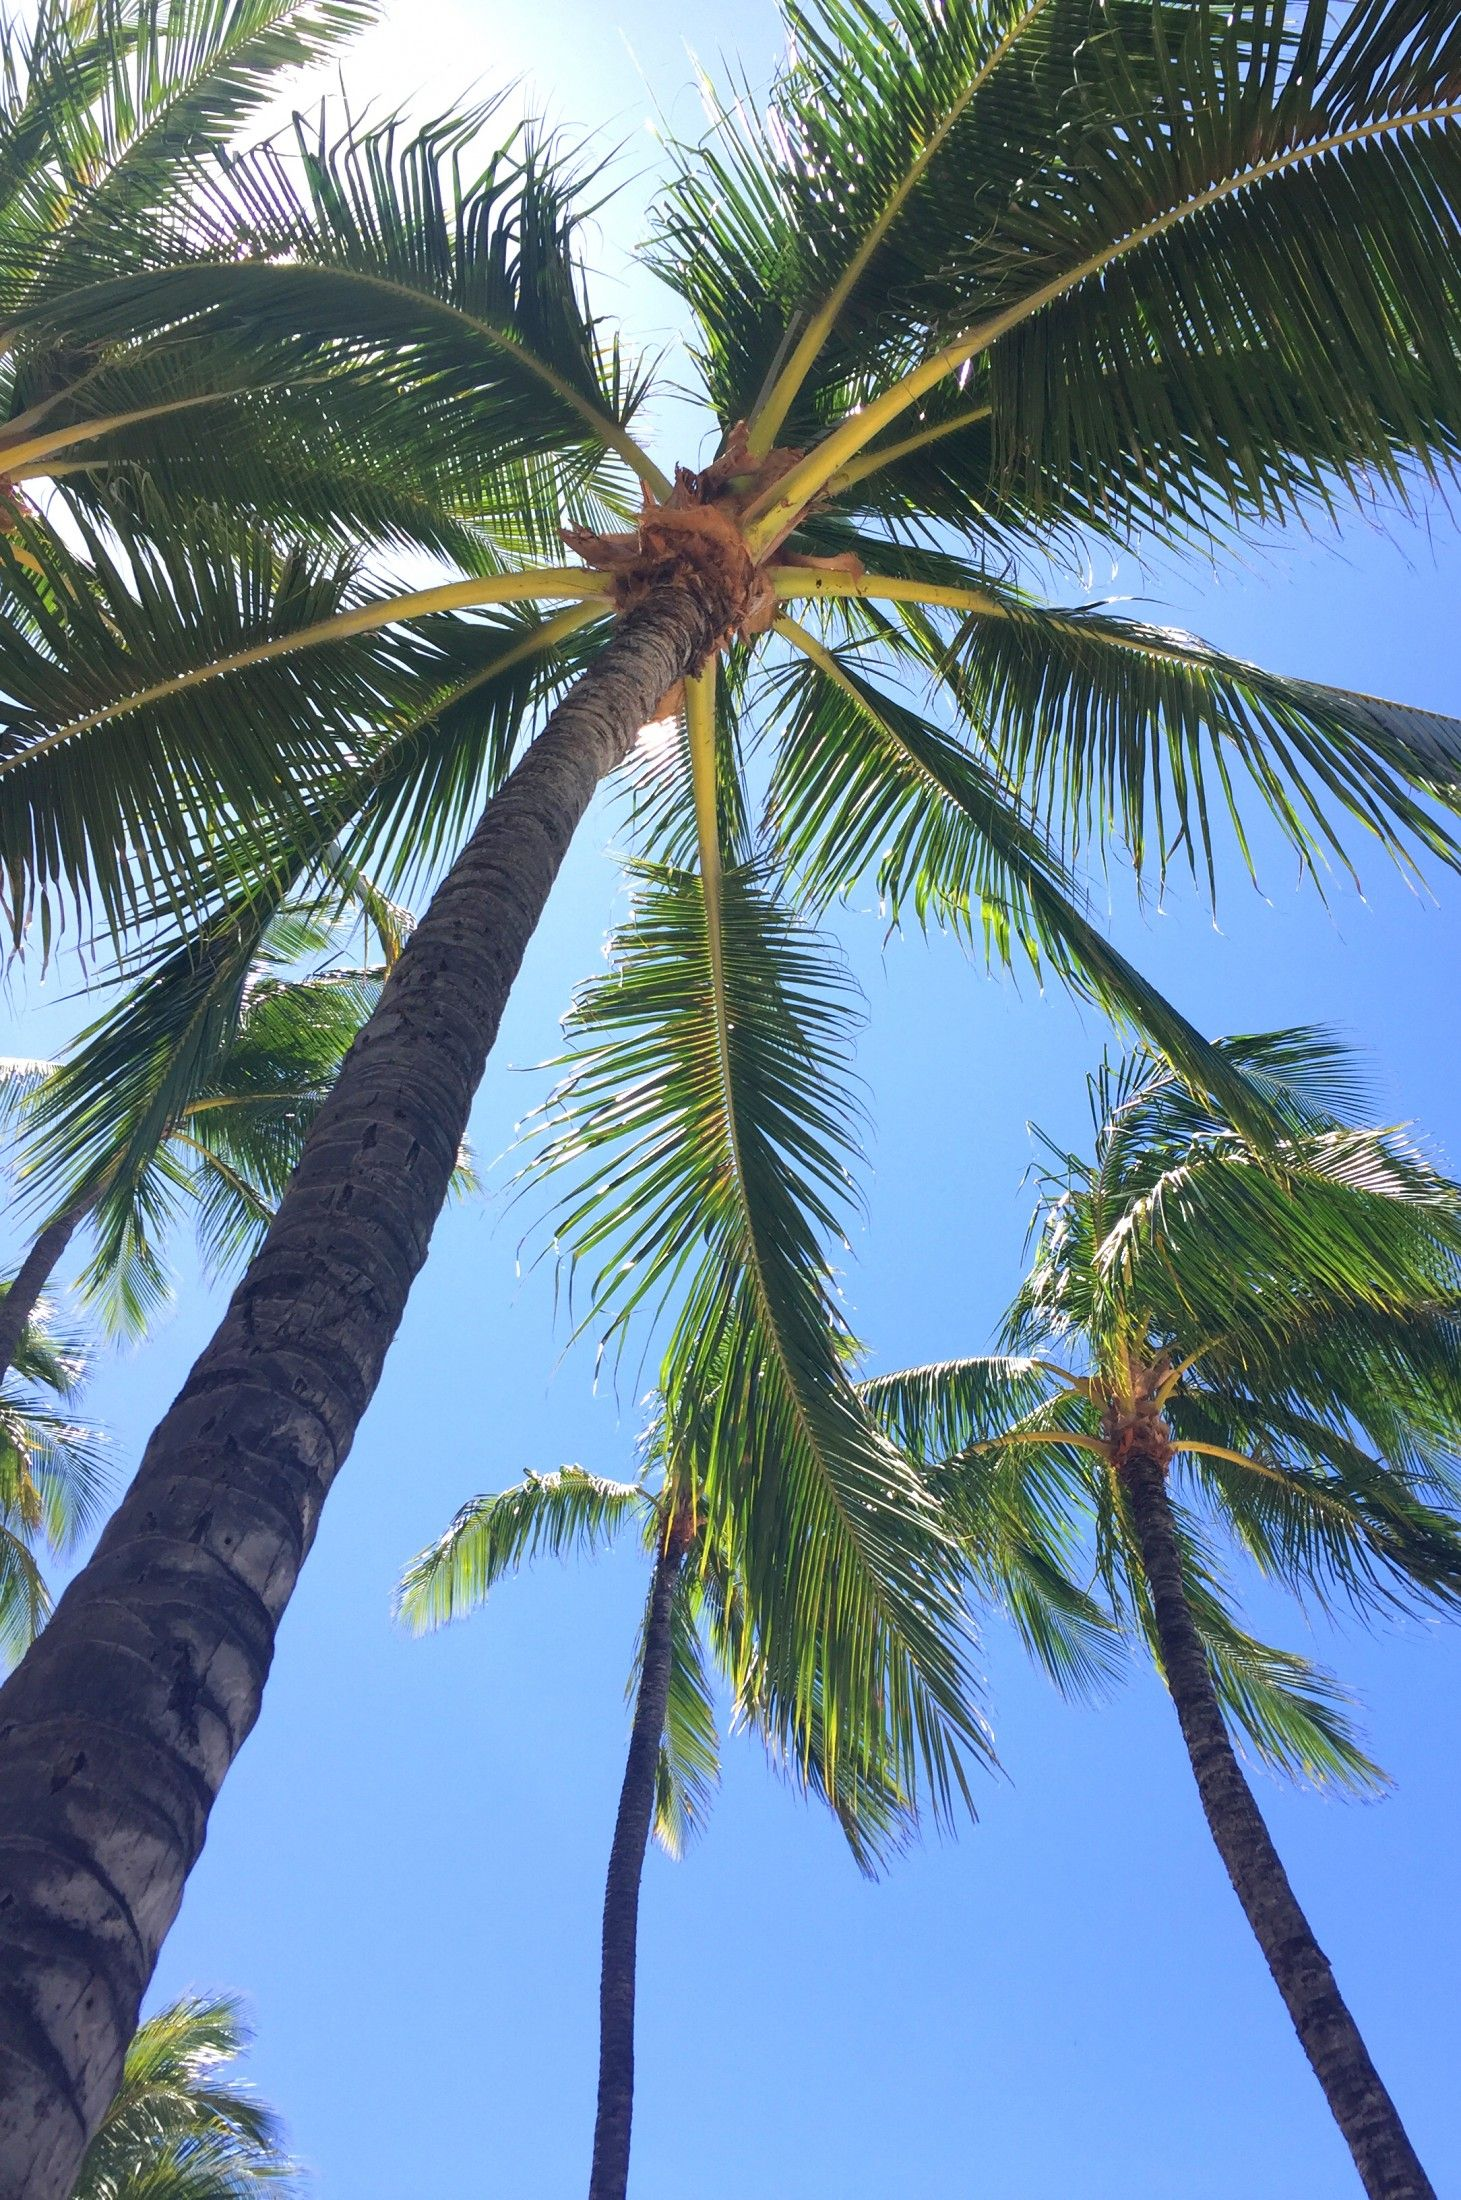 Summer Lifestyle Background Photography Wallpaper Iphone Summer Palm Trees Wallpaper Wallpaper palm trees on blue sky